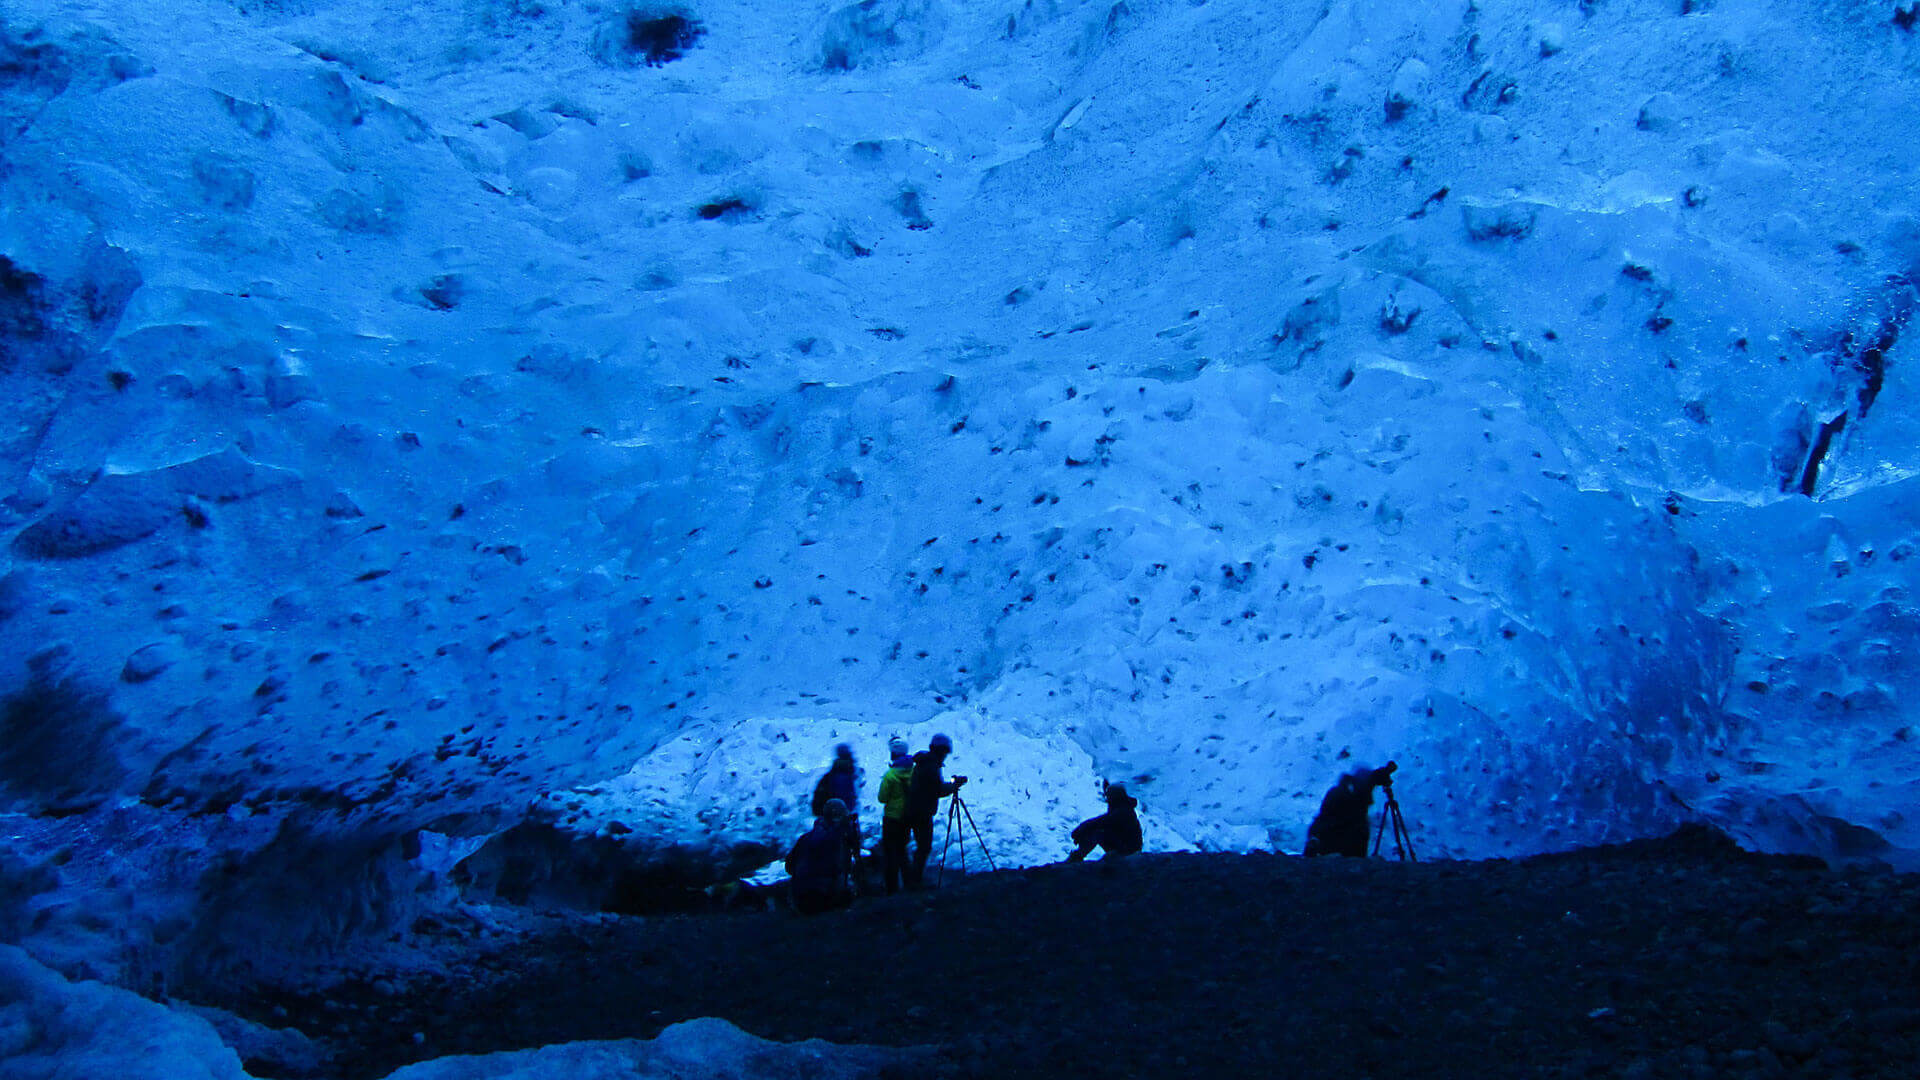 People photographing in Icecave, in Vatnajokull